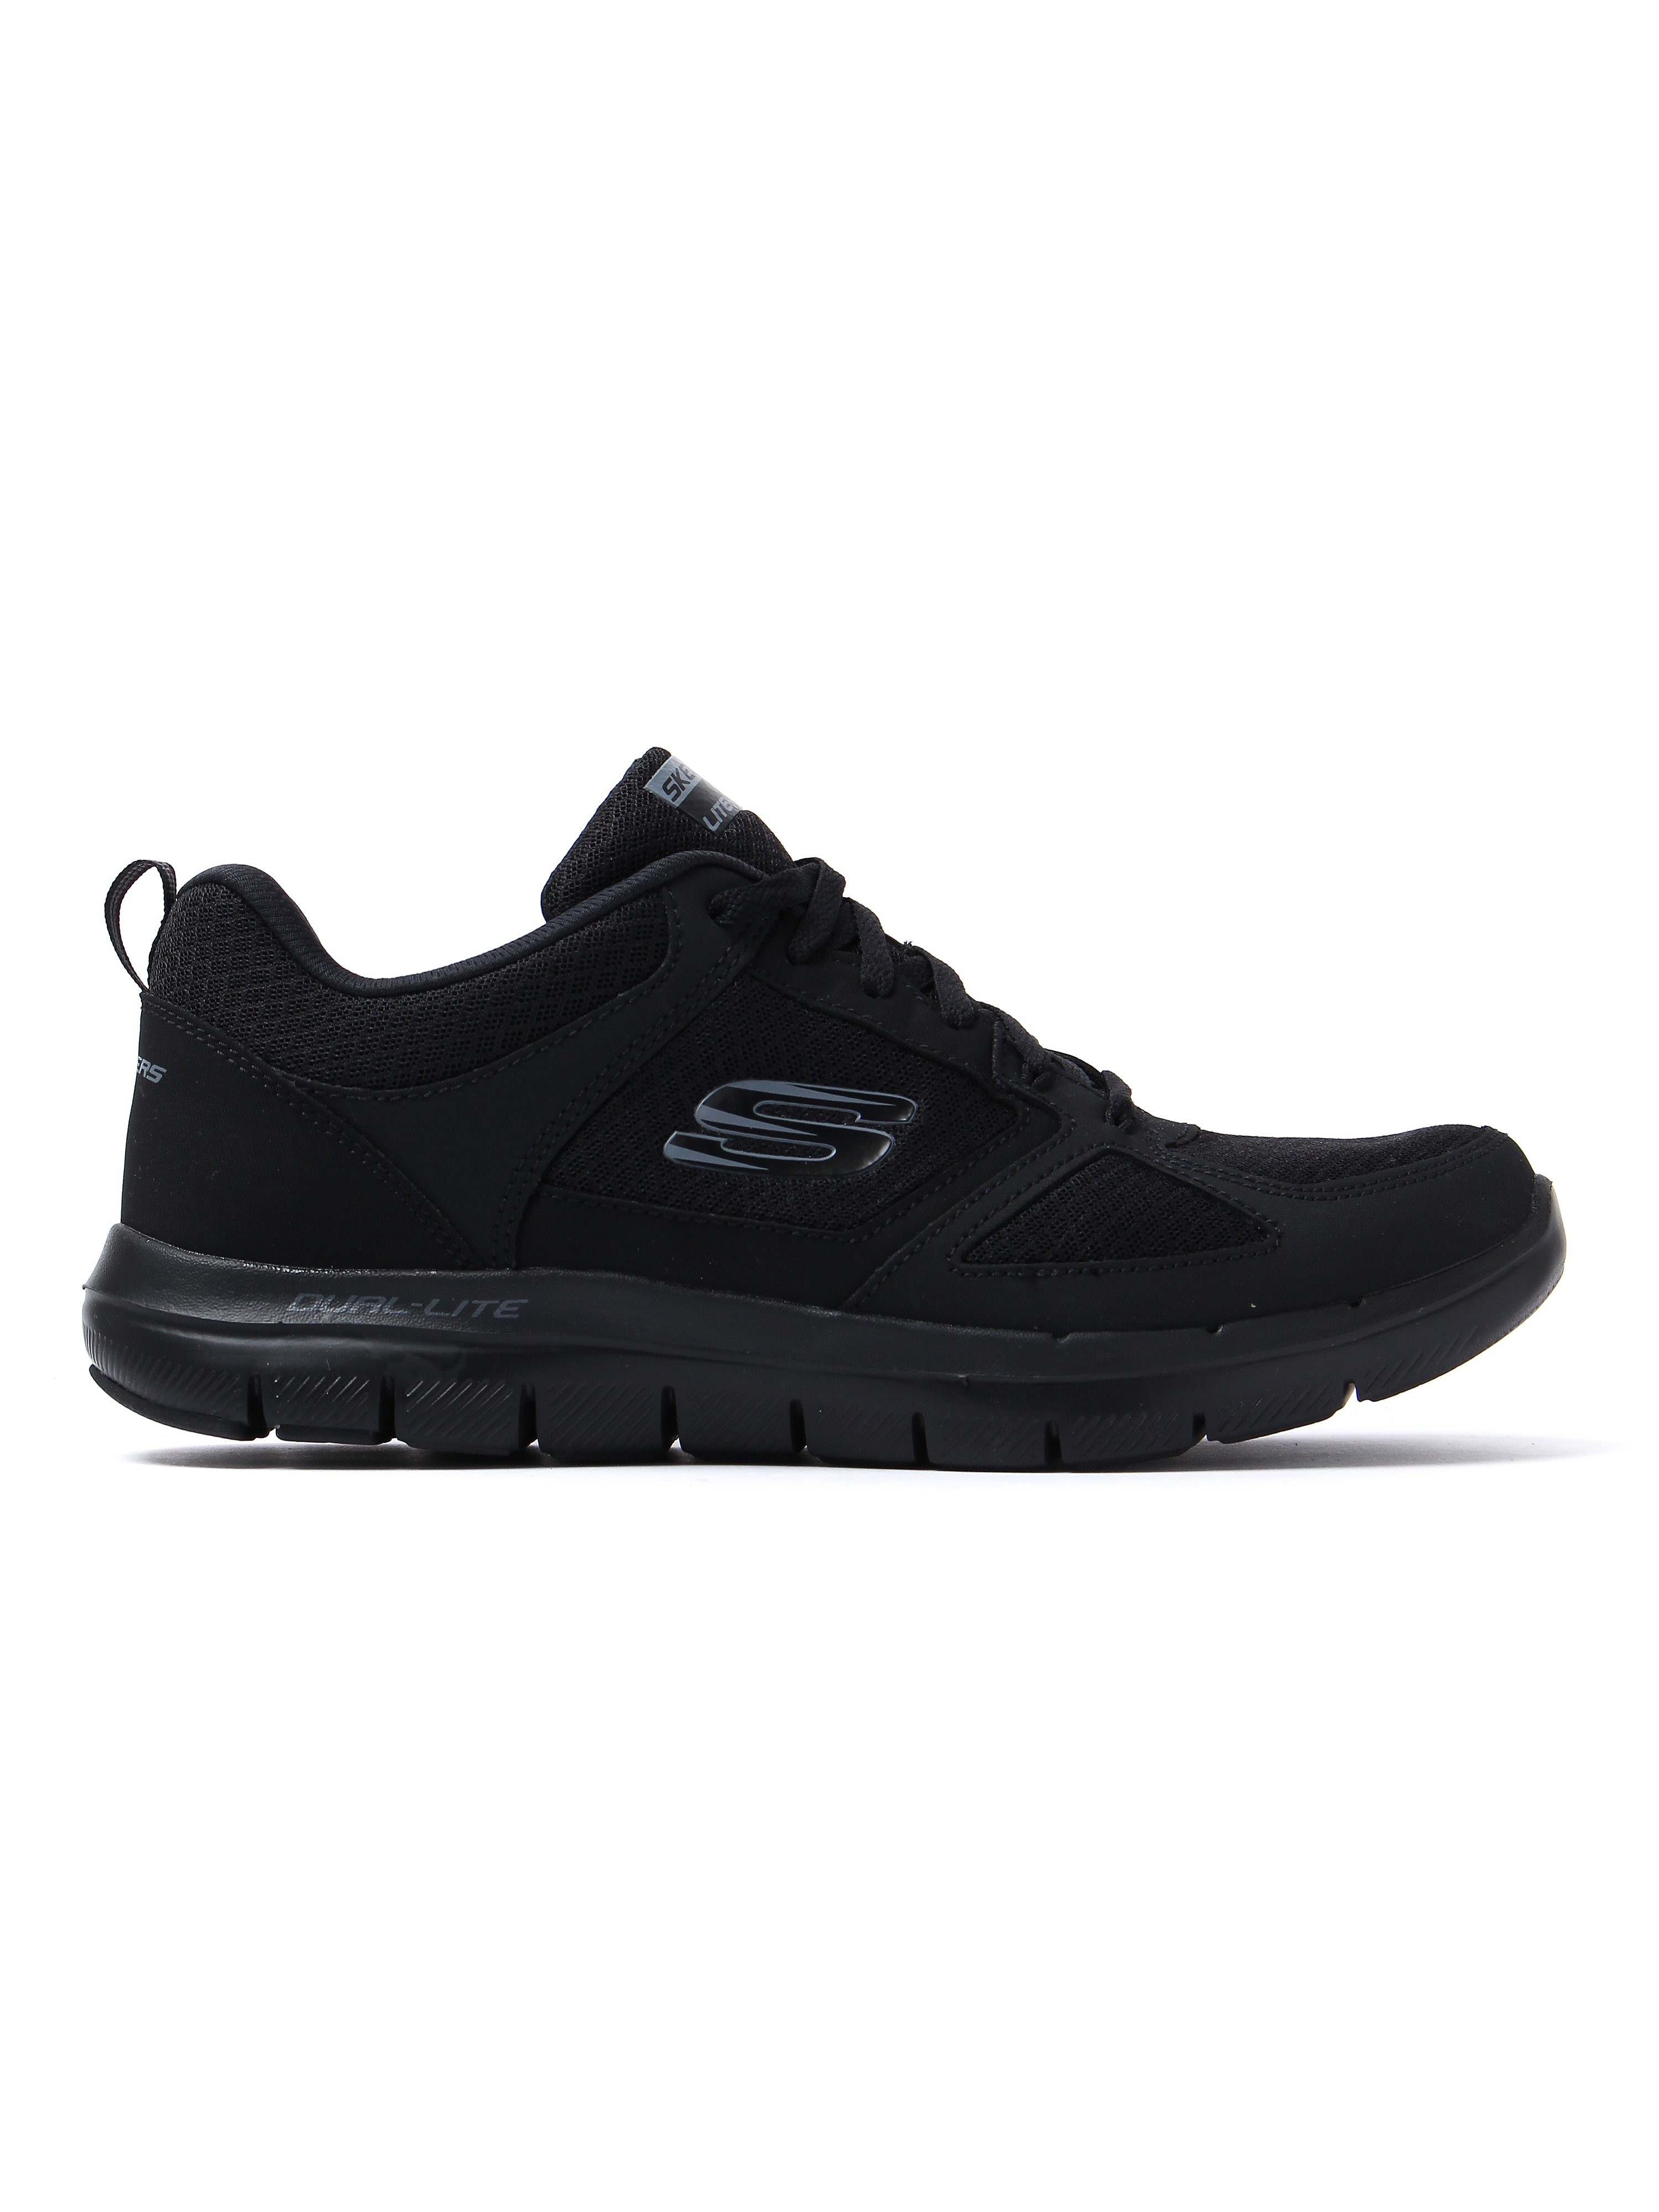 Skechers Men's Flex Advantage 2.0 Lindman Trainers - Black